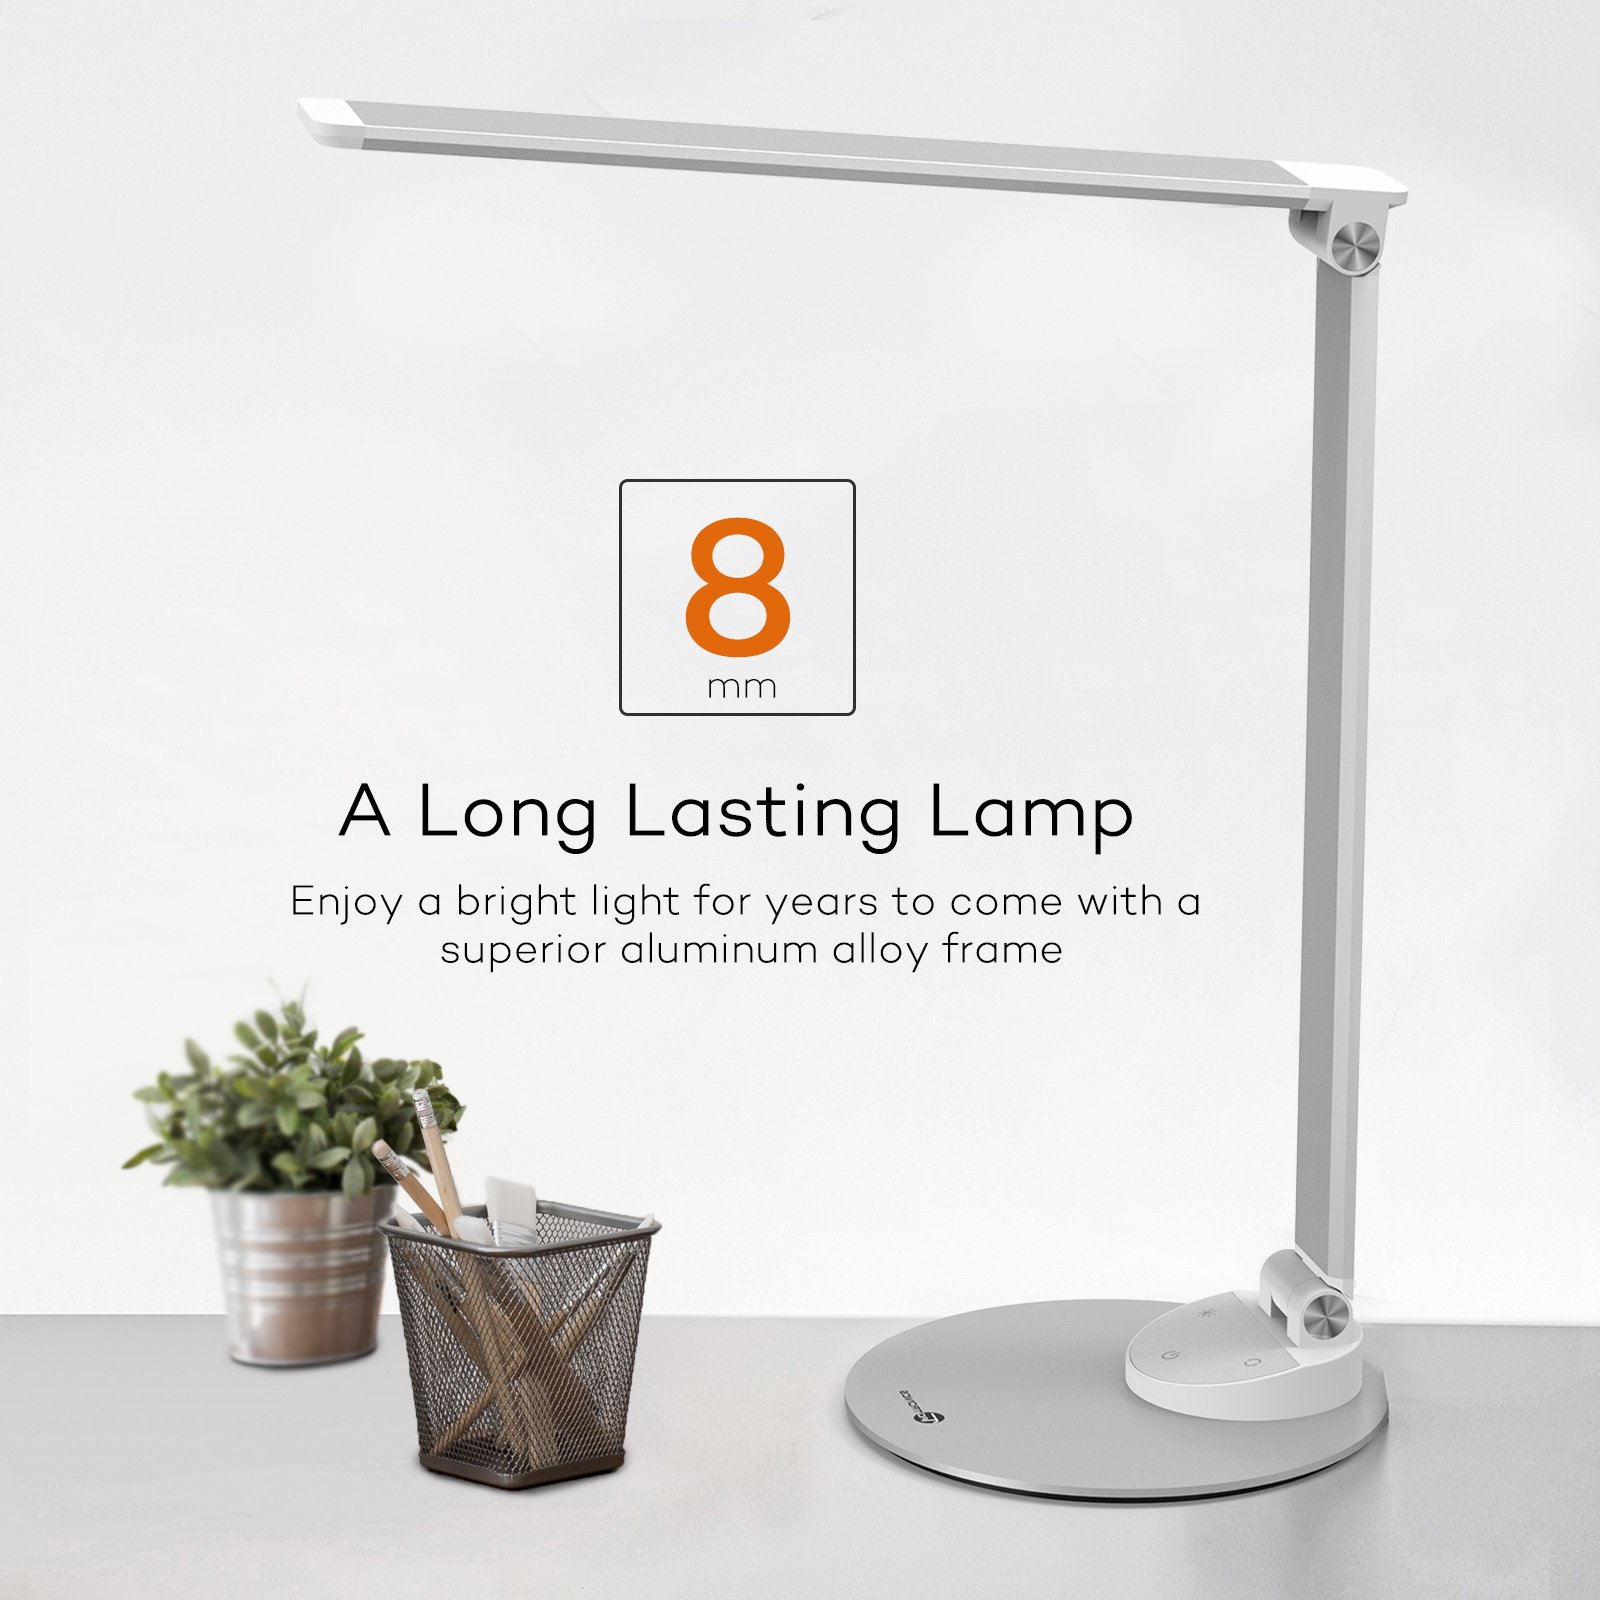 TaoTronics LED Desk Lamp with USB Charging Port, Eye- care Dimmable Lamp, 5 Color Temperatures with 5 Brightness Levels, Touch Control, Metal, Official Member of Philips EnabLED Licensing Program by TaoTronics (Image #2)